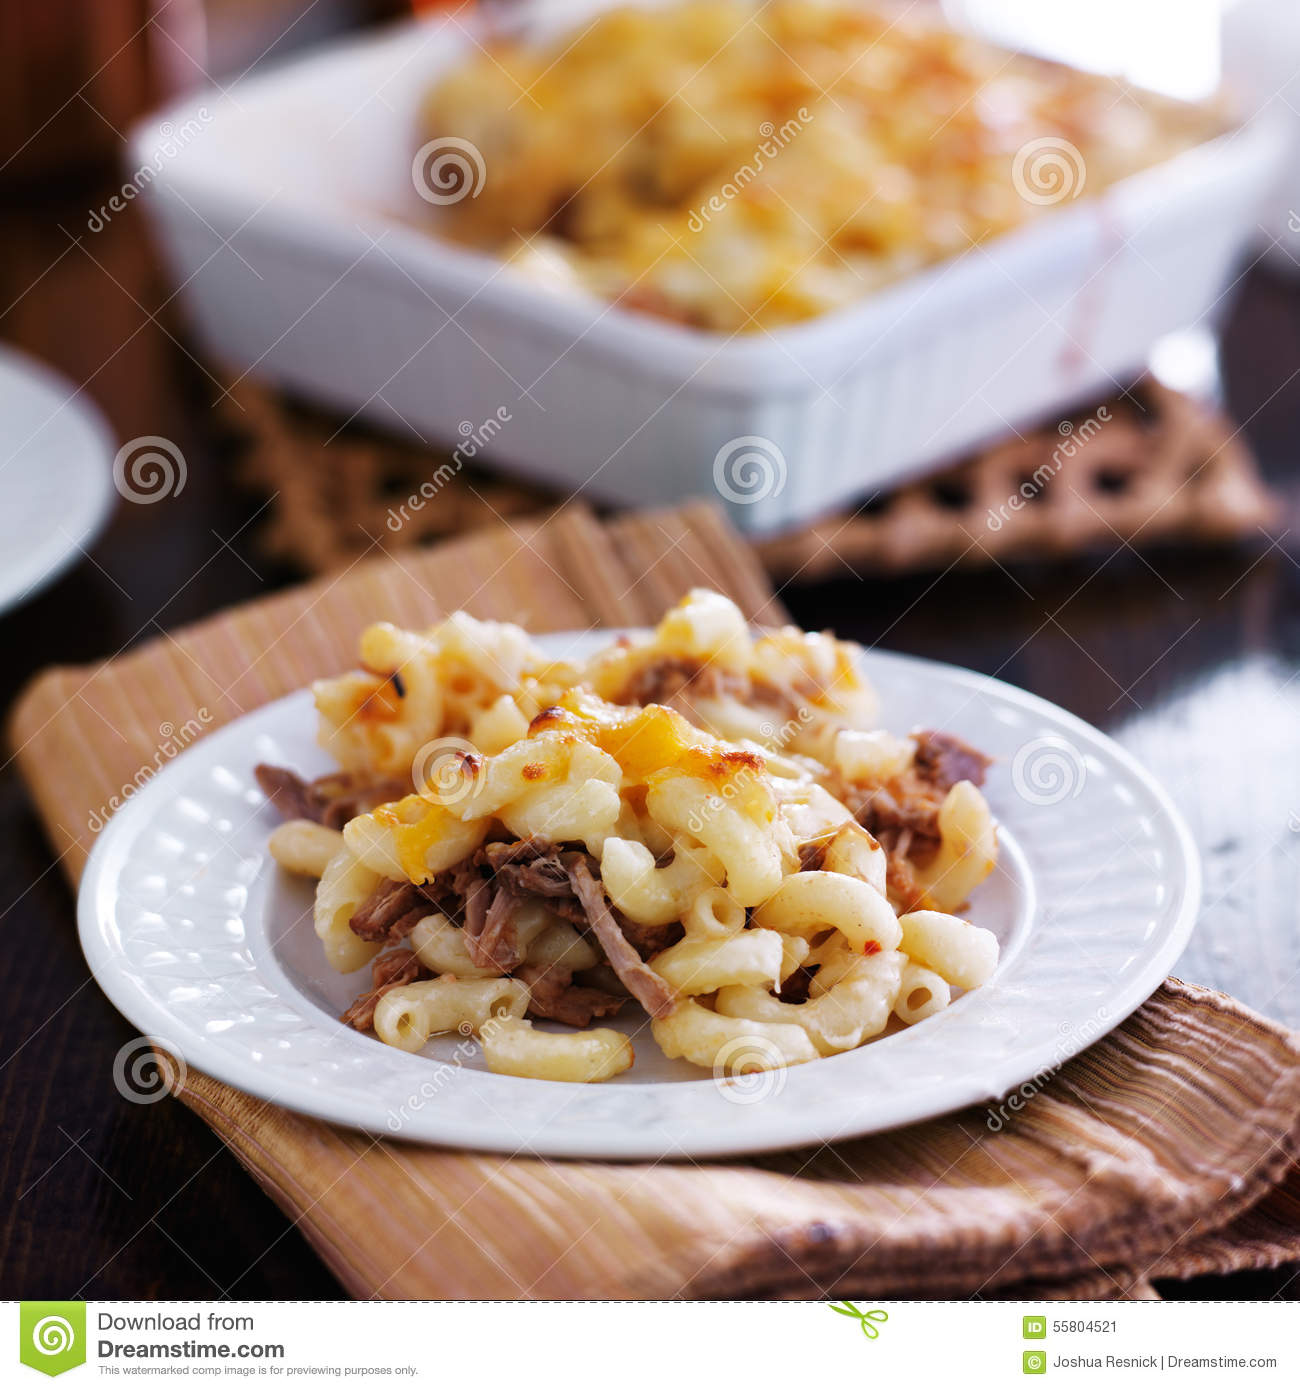 Plate Of Baked Macaroni And Cheese Casserole Stock Image ...